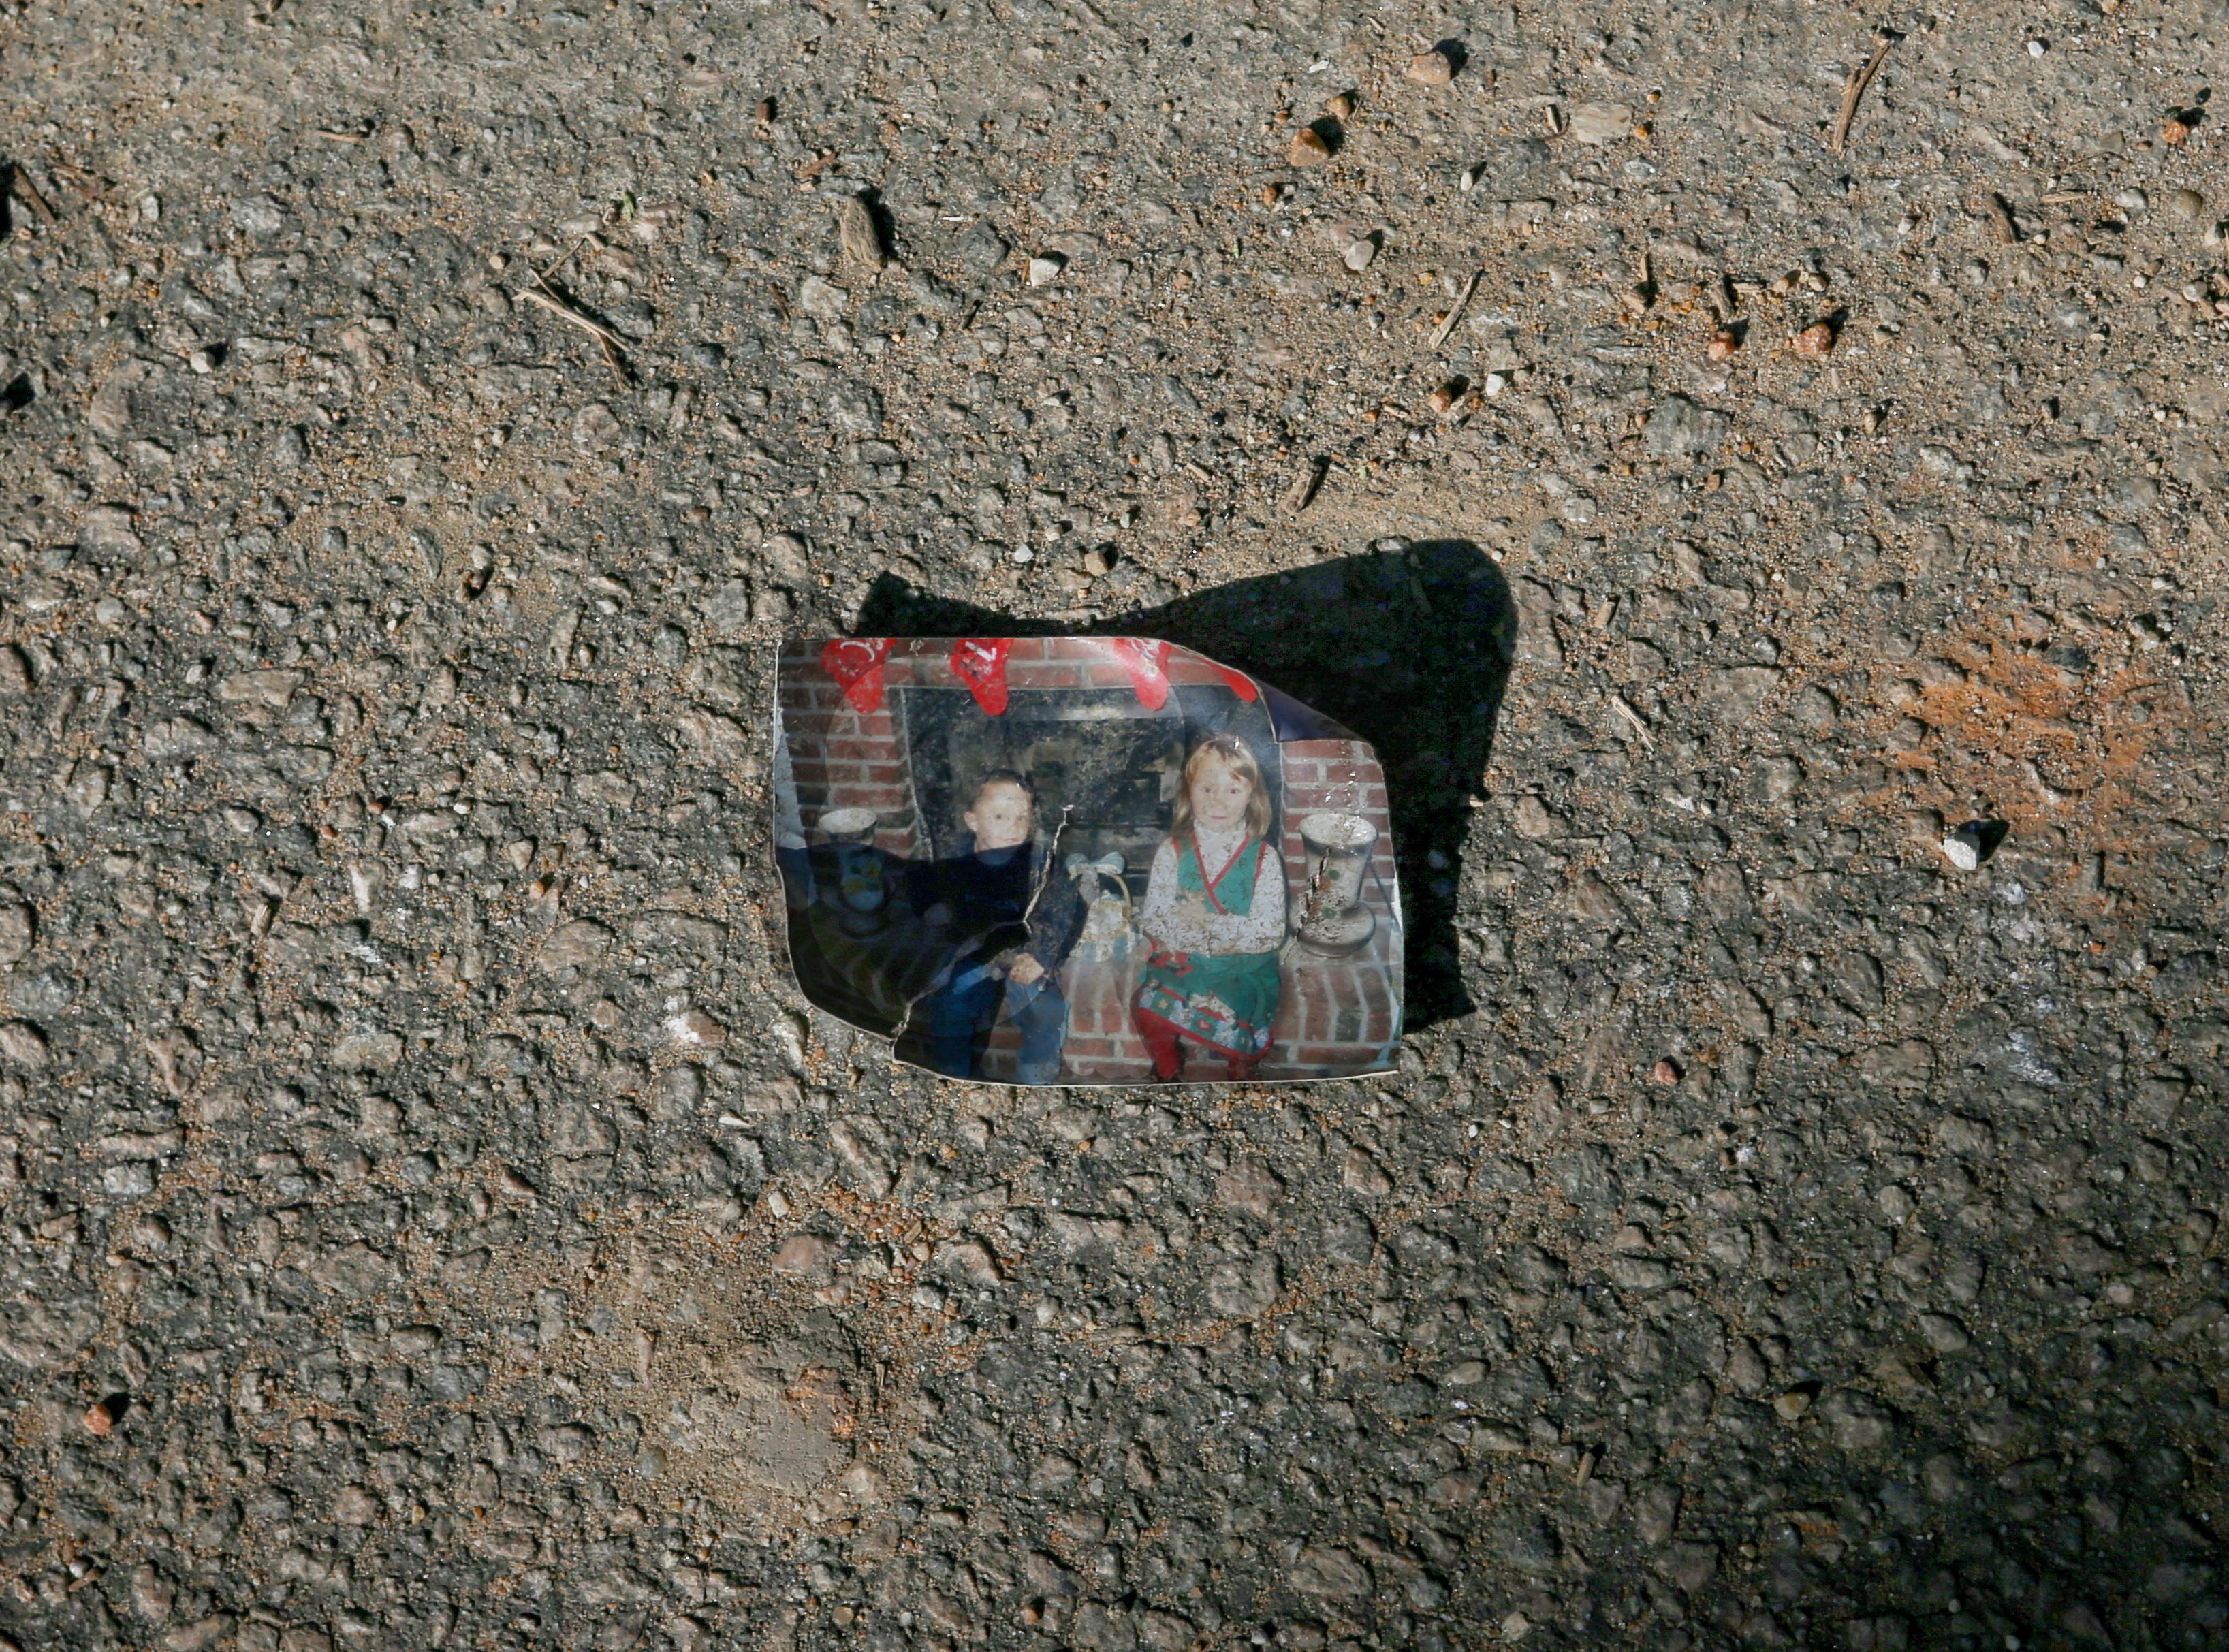 A family photo lays in the street in Beauregard, Ala. on March 6, 2019.